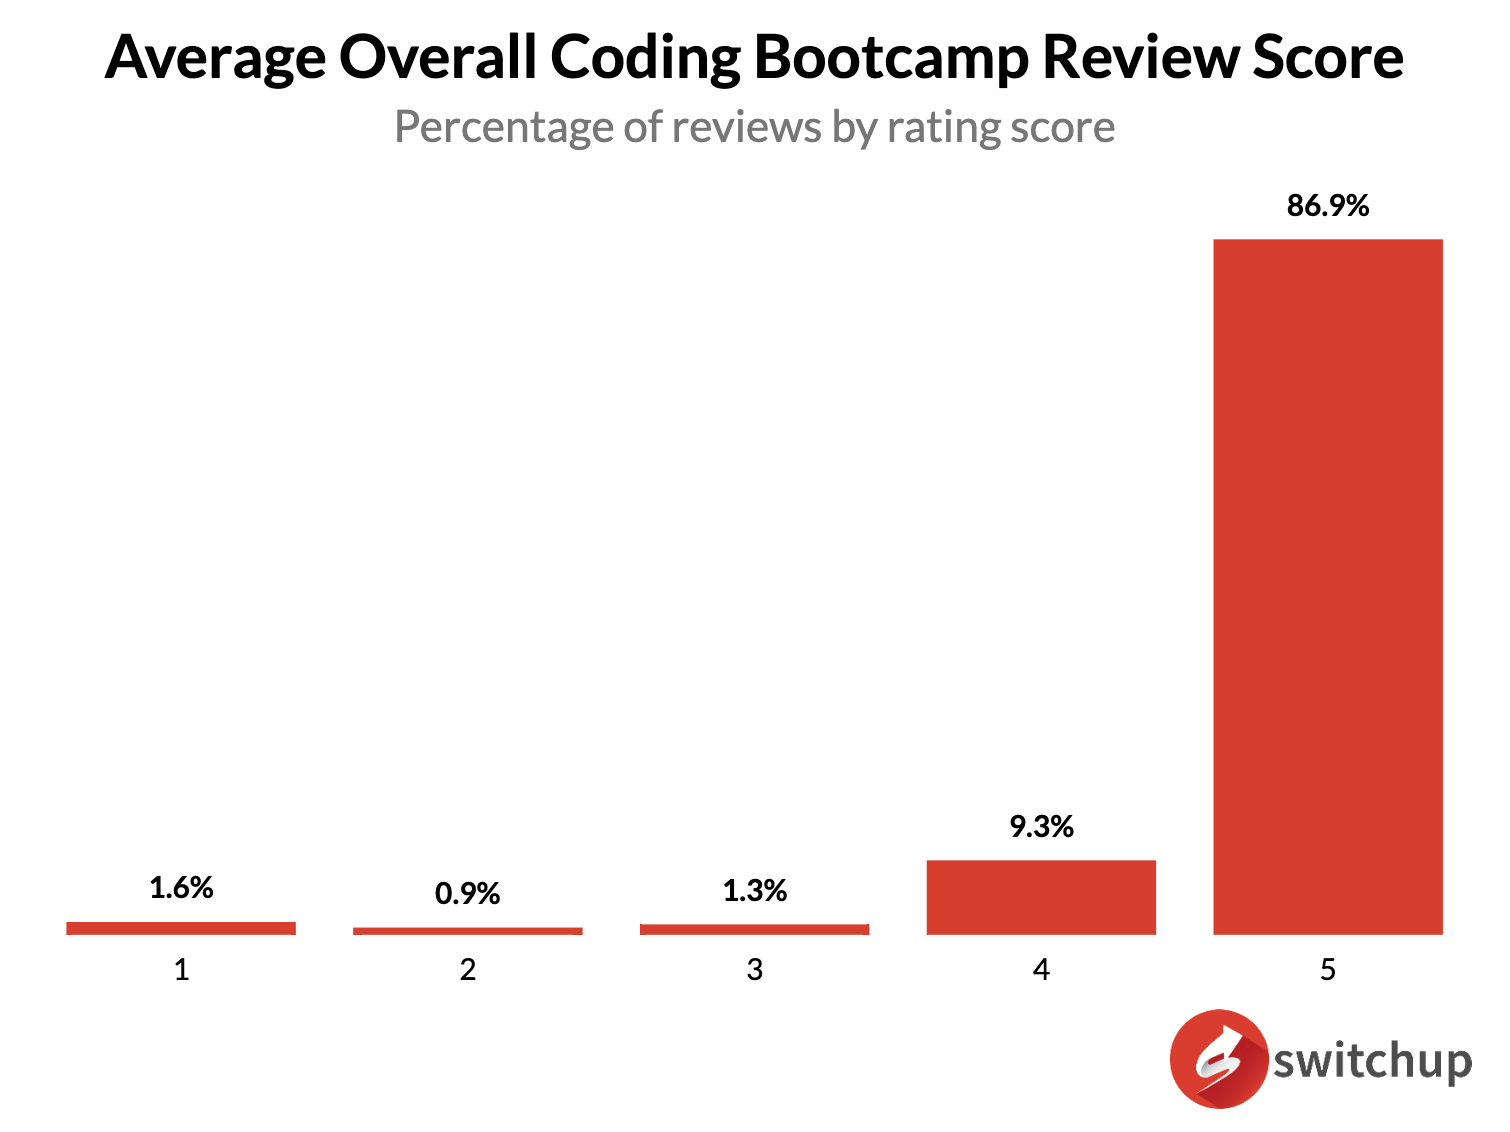 Chart 1: Percentage of reviews by rating score. (E.g. 86.9% of reviewers gave an average overall rating of 5.)